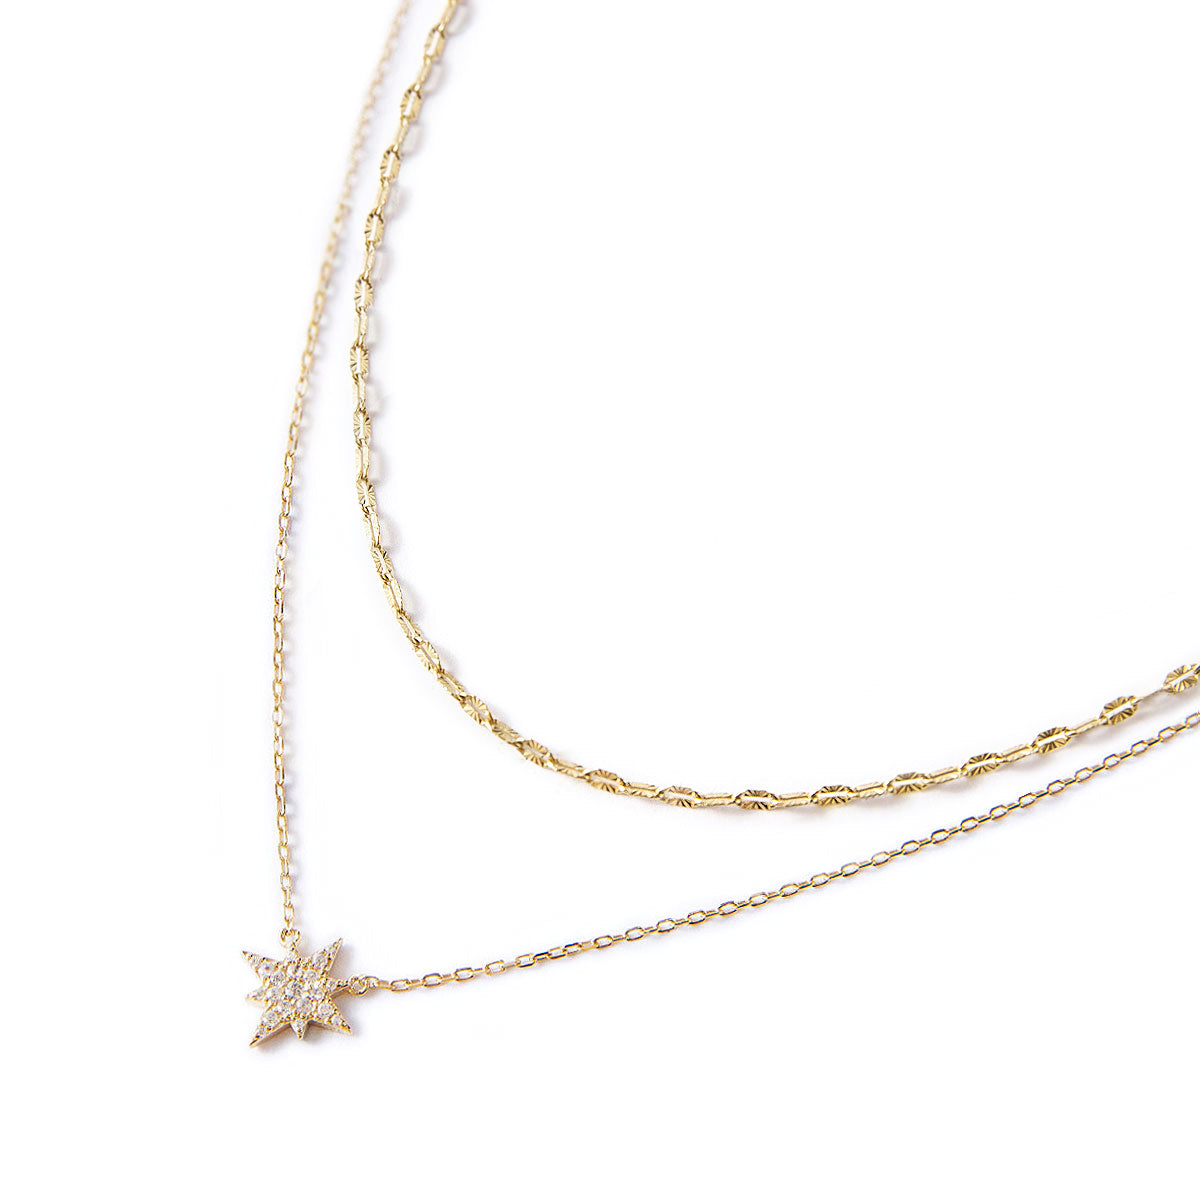 chain necklace and star pendant necklace